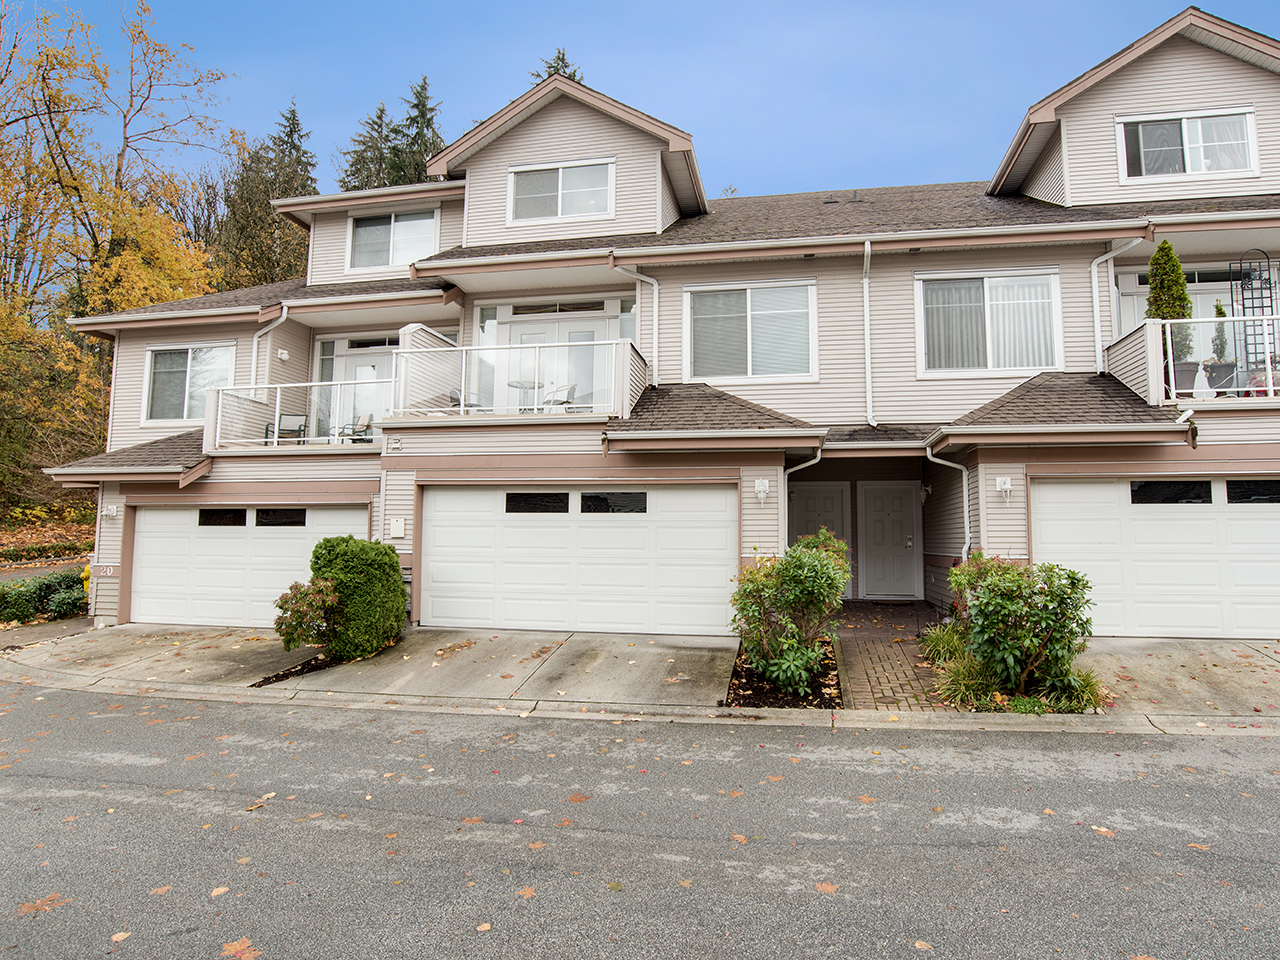 19-11860 River Road for MLS